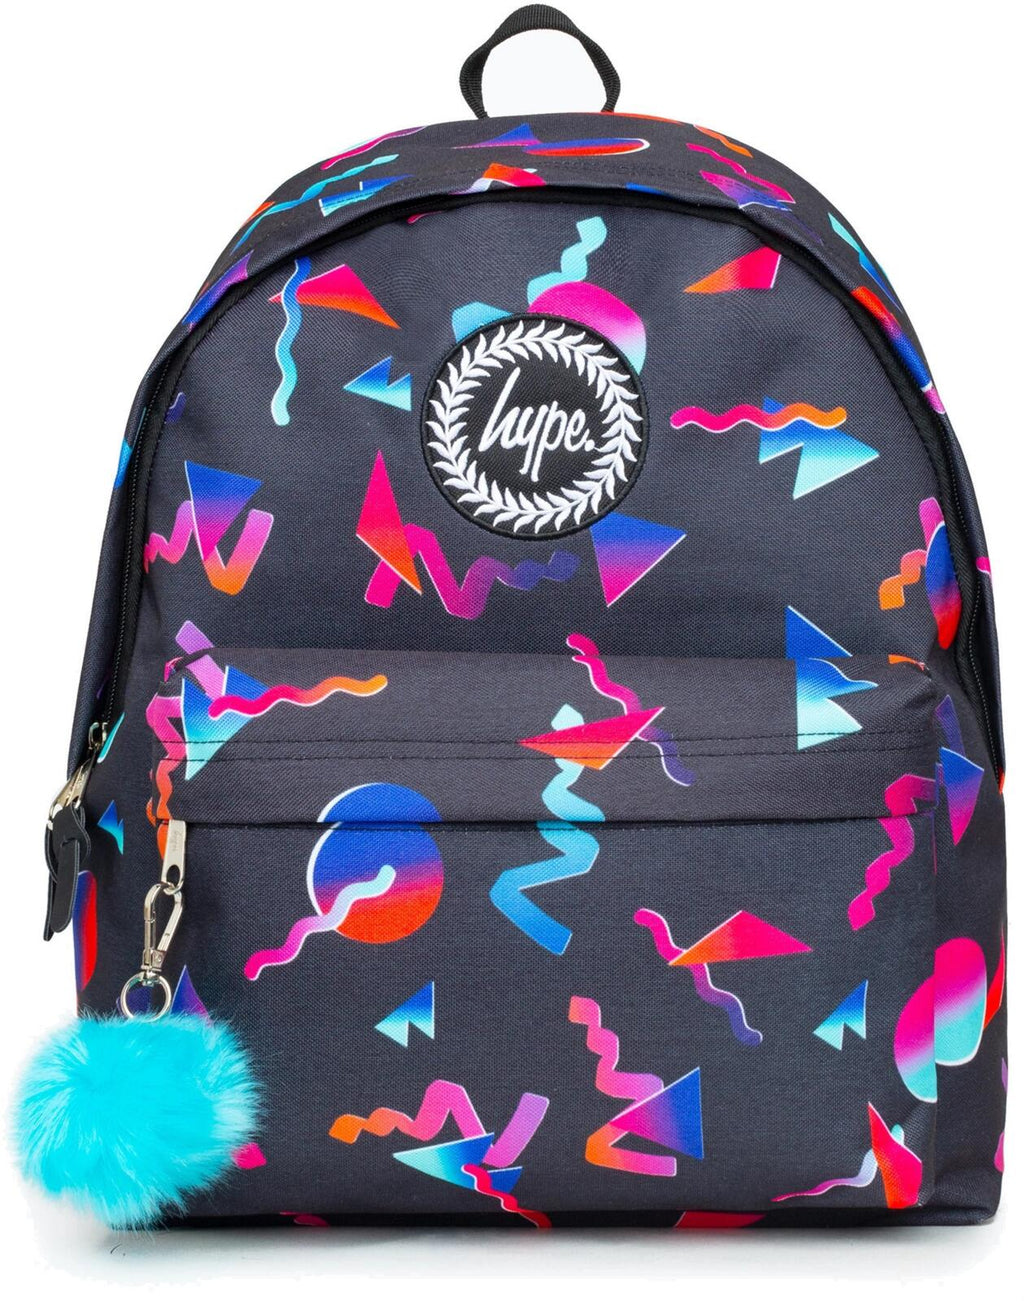 Hype Disco Neon Shapes Pom Pom Backpack Bag Black